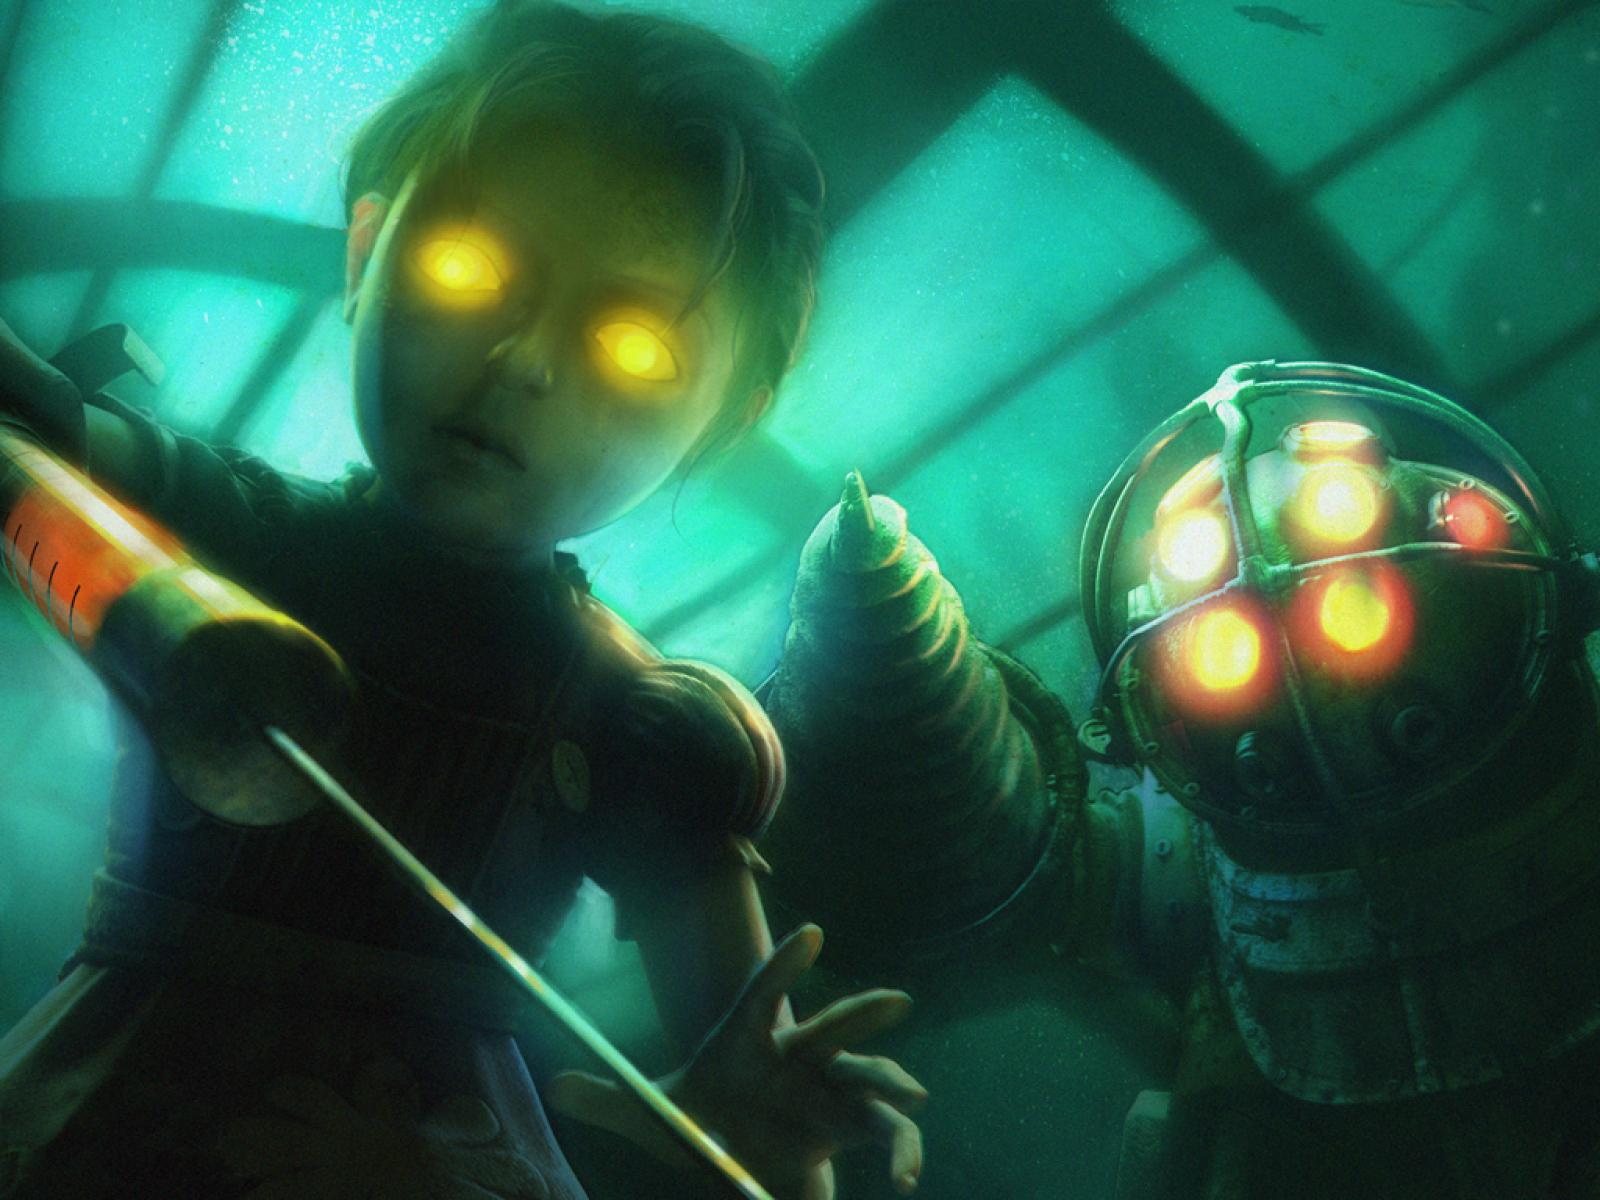 http://ayay.co.uk/backgrounds/action_rpg_games/bioshock/little-sister-injection.jpg